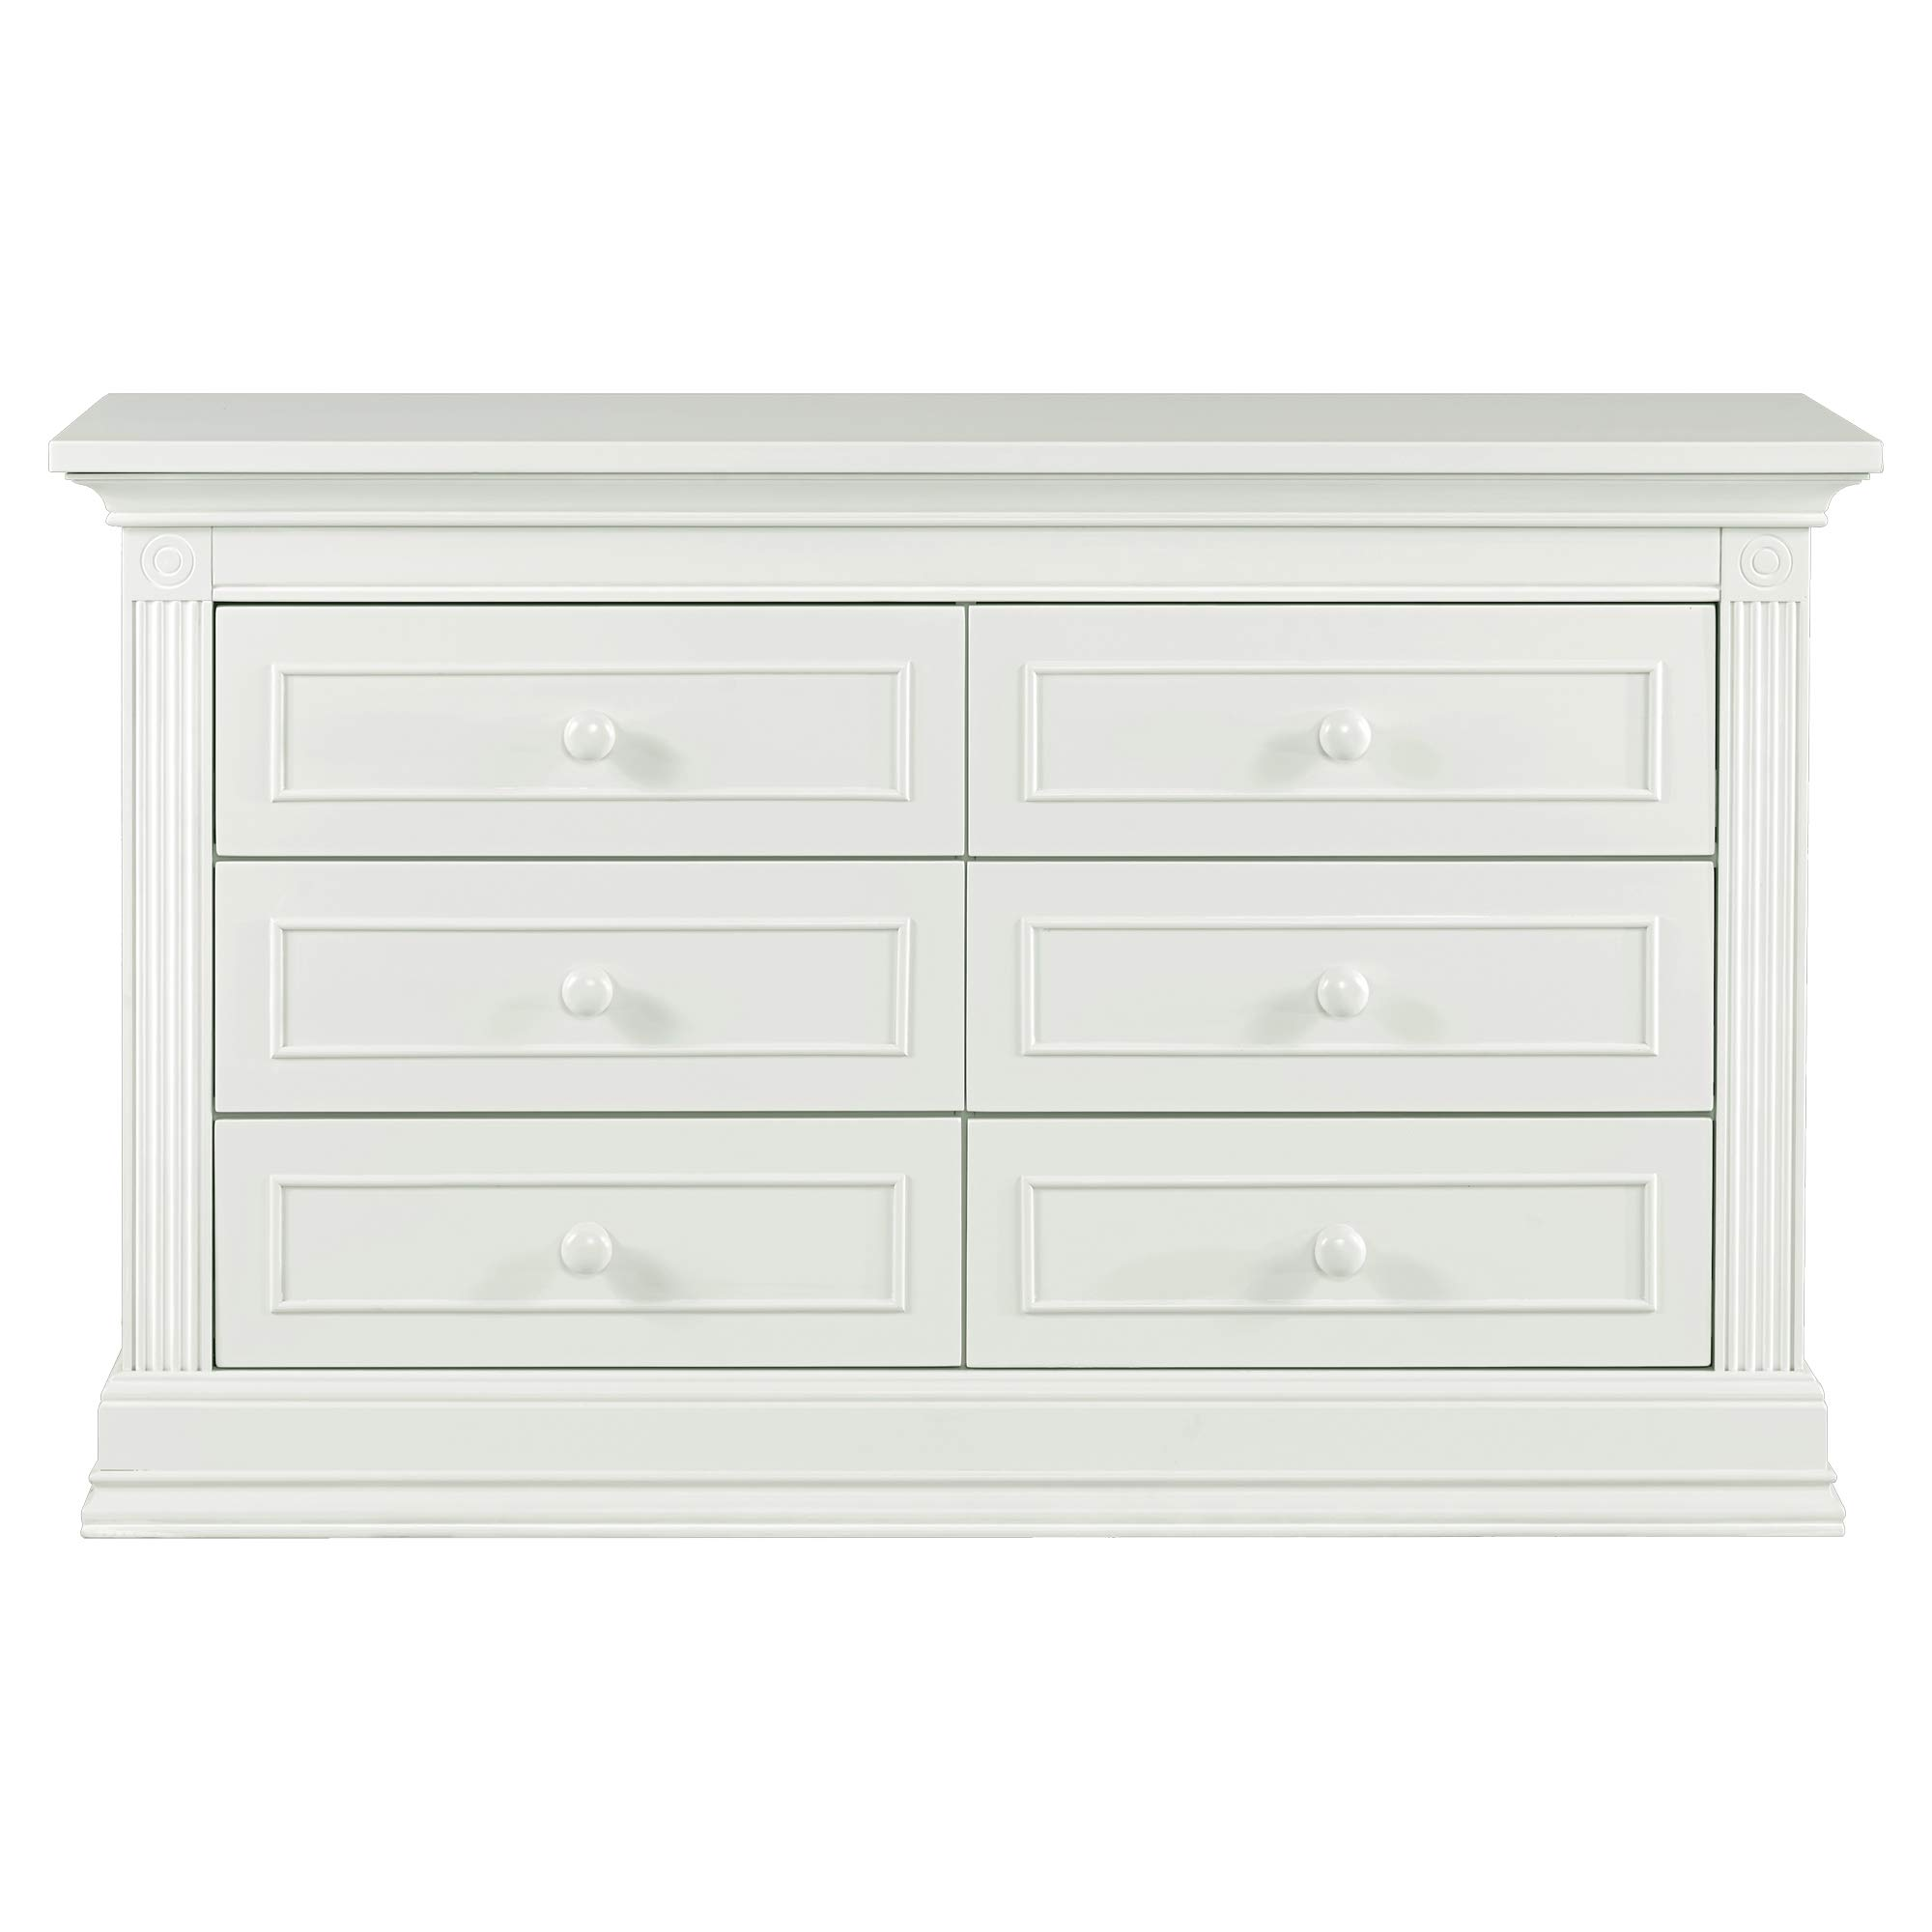 Baby Cache Montana Collection Natural Hardwood 6 Drawer Dresser | Lasting Quality & Design | Kiln-dried & Hand-Crafted Construction | 56'' x 18.5'' x 34'', Glazed White